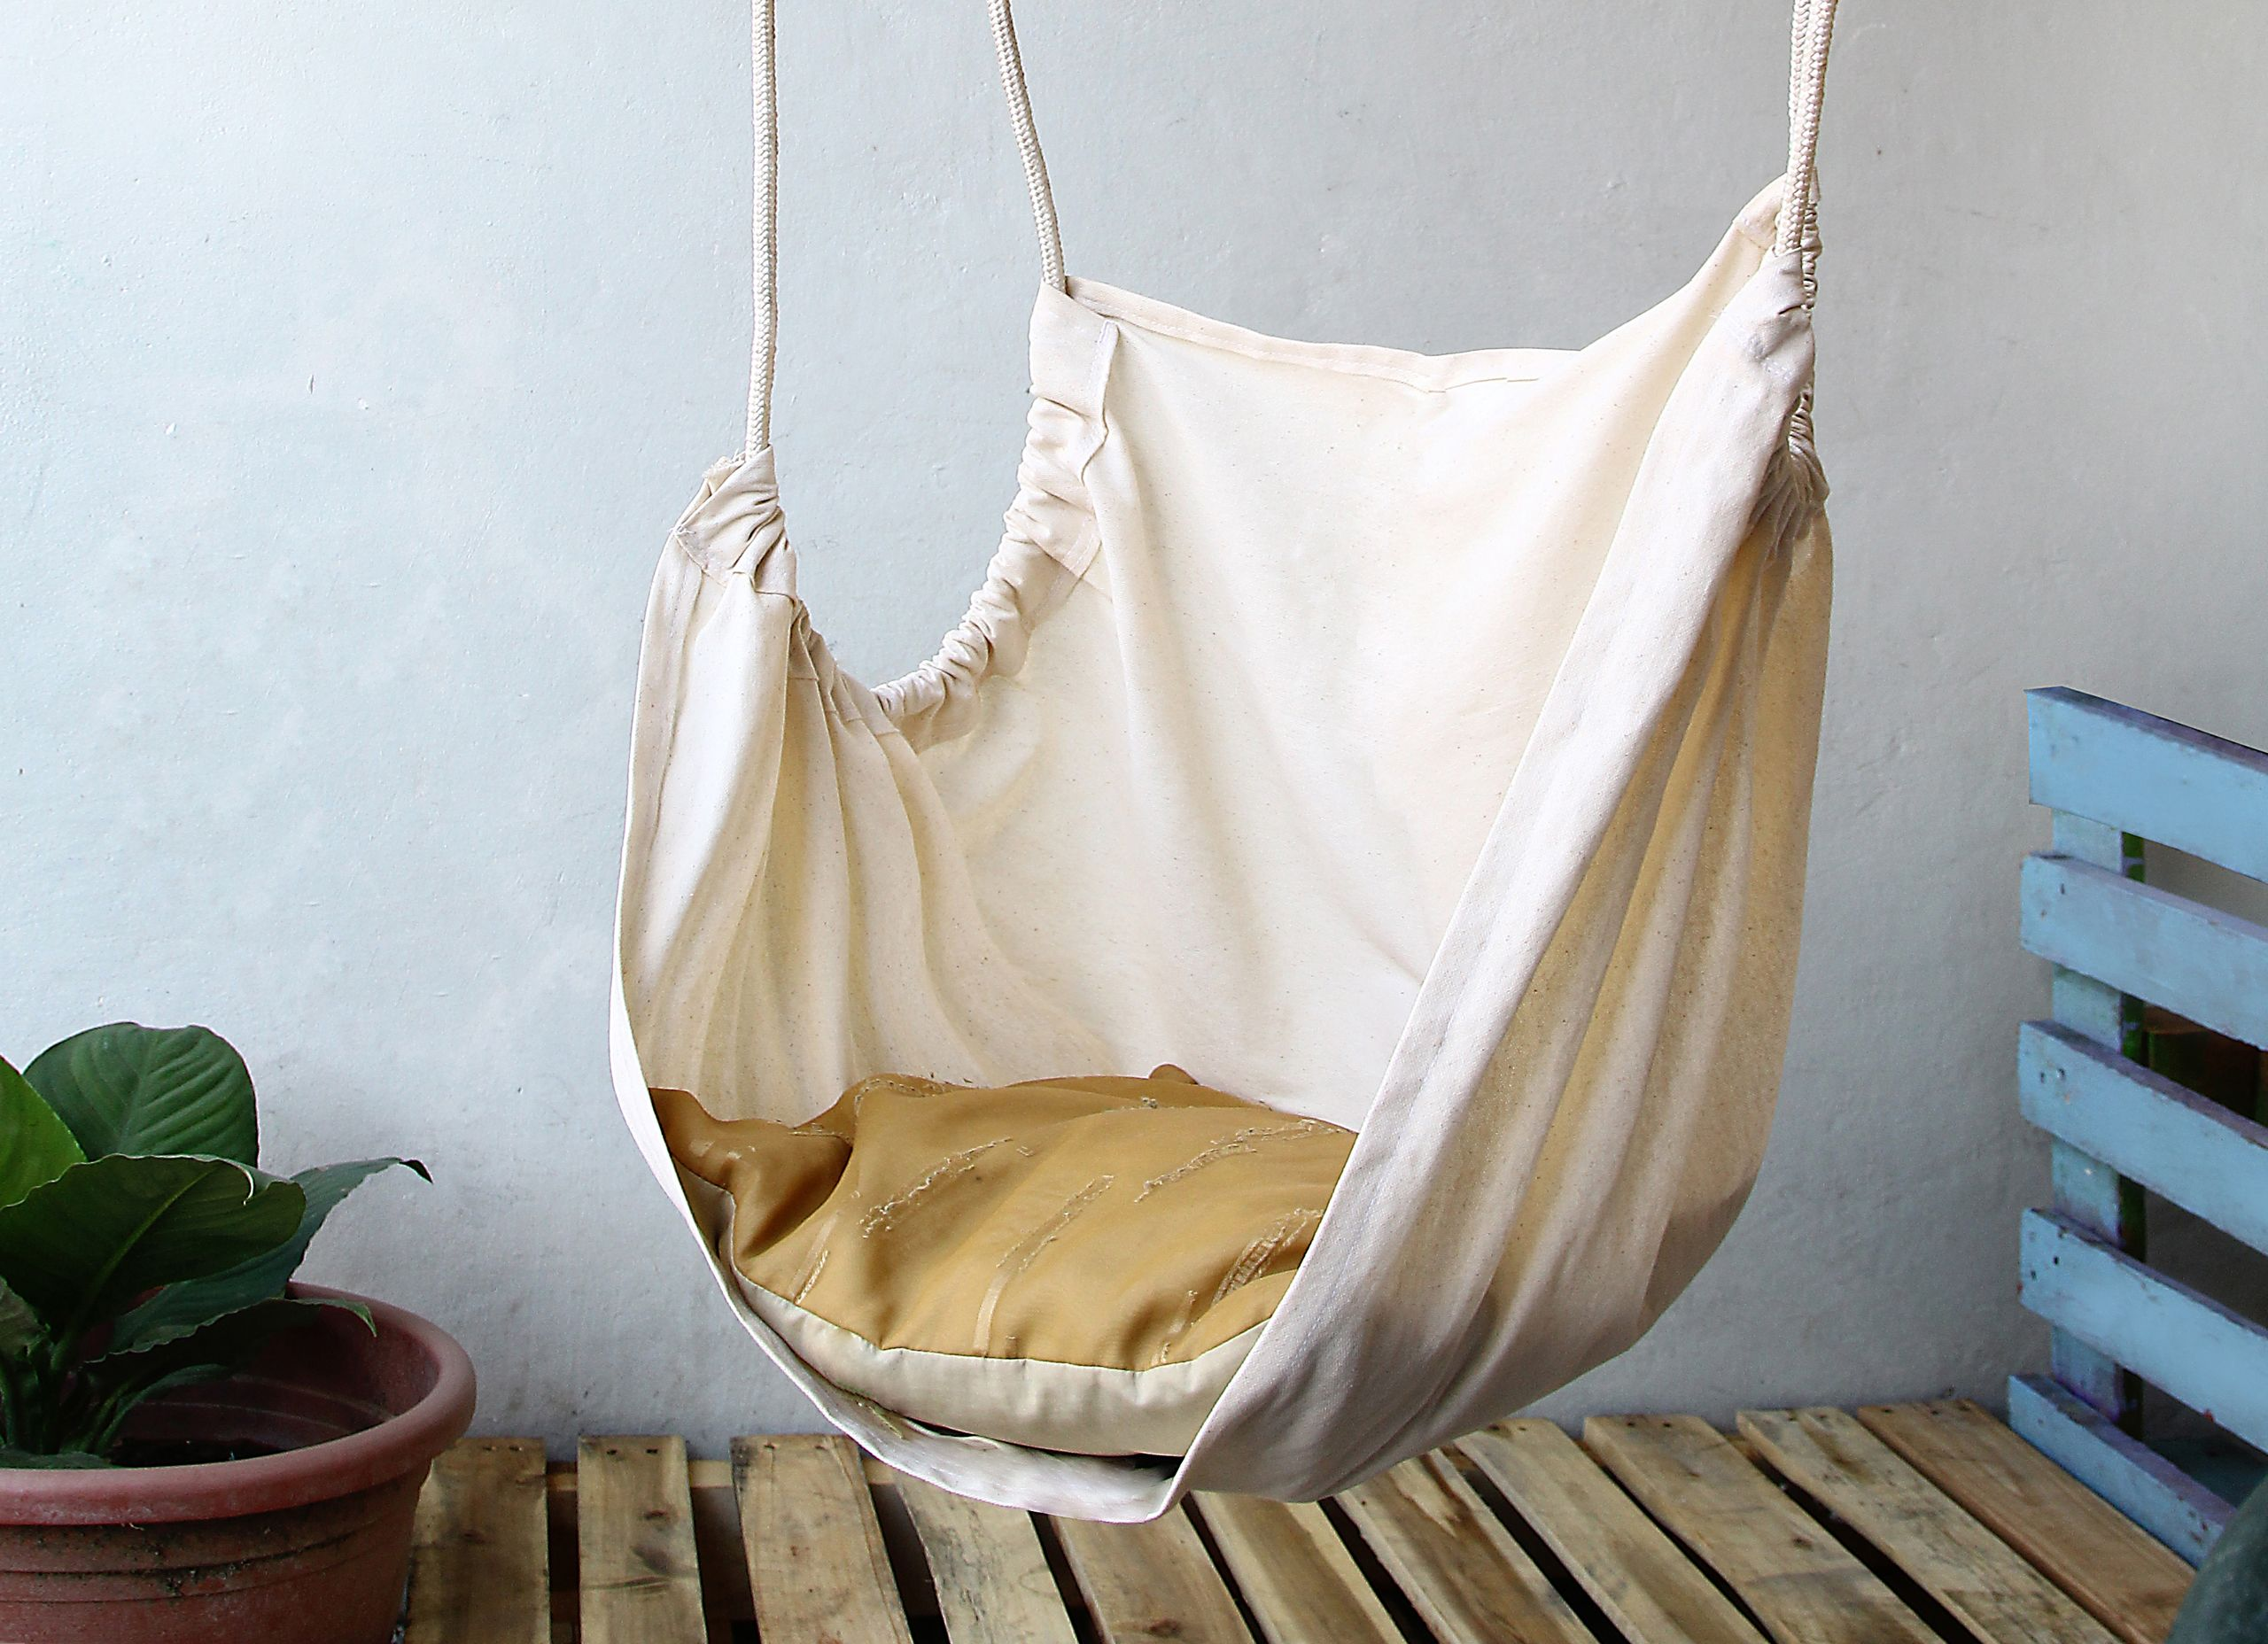 Make a hammock chair diy hammock hammock chair and diy for Diy bedroom hammock